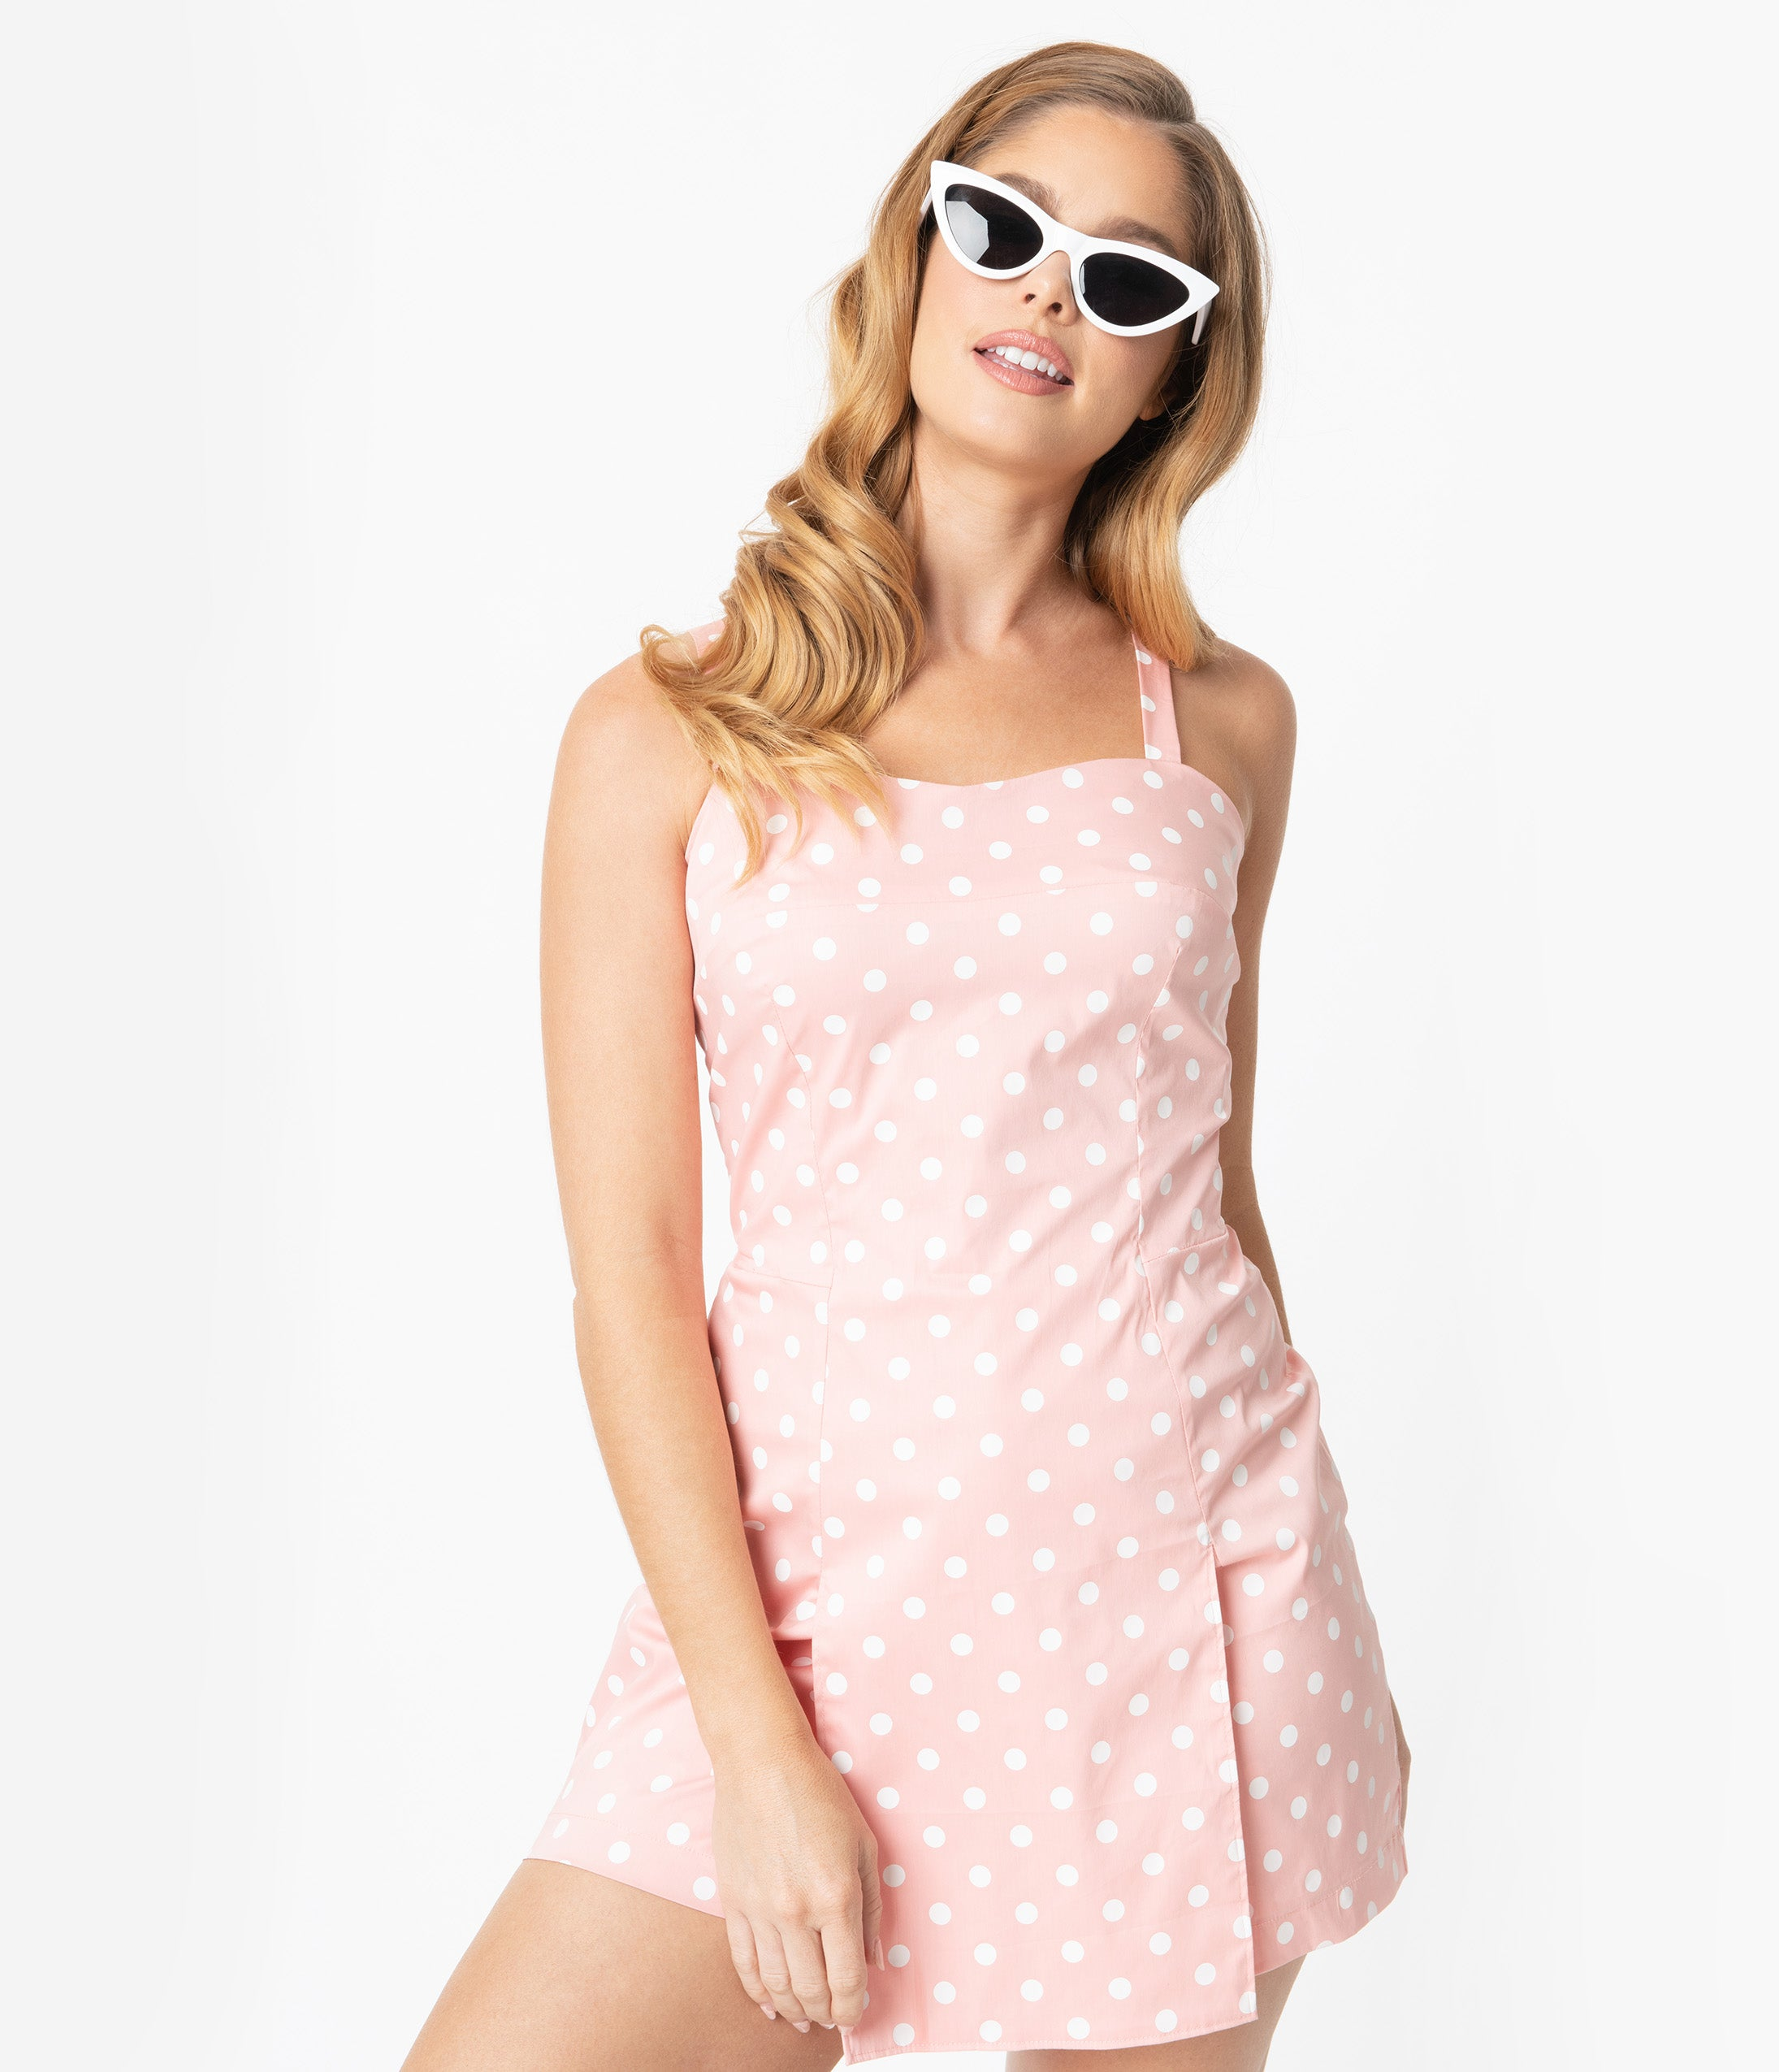 Vintage Rompers, Playsuits | Retro, Pin Up, Rockabilly Playsuits Unique Vintage Light Pink  White Dot Print Skirted Dolly Romper $58.00 AT vintagedancer.com